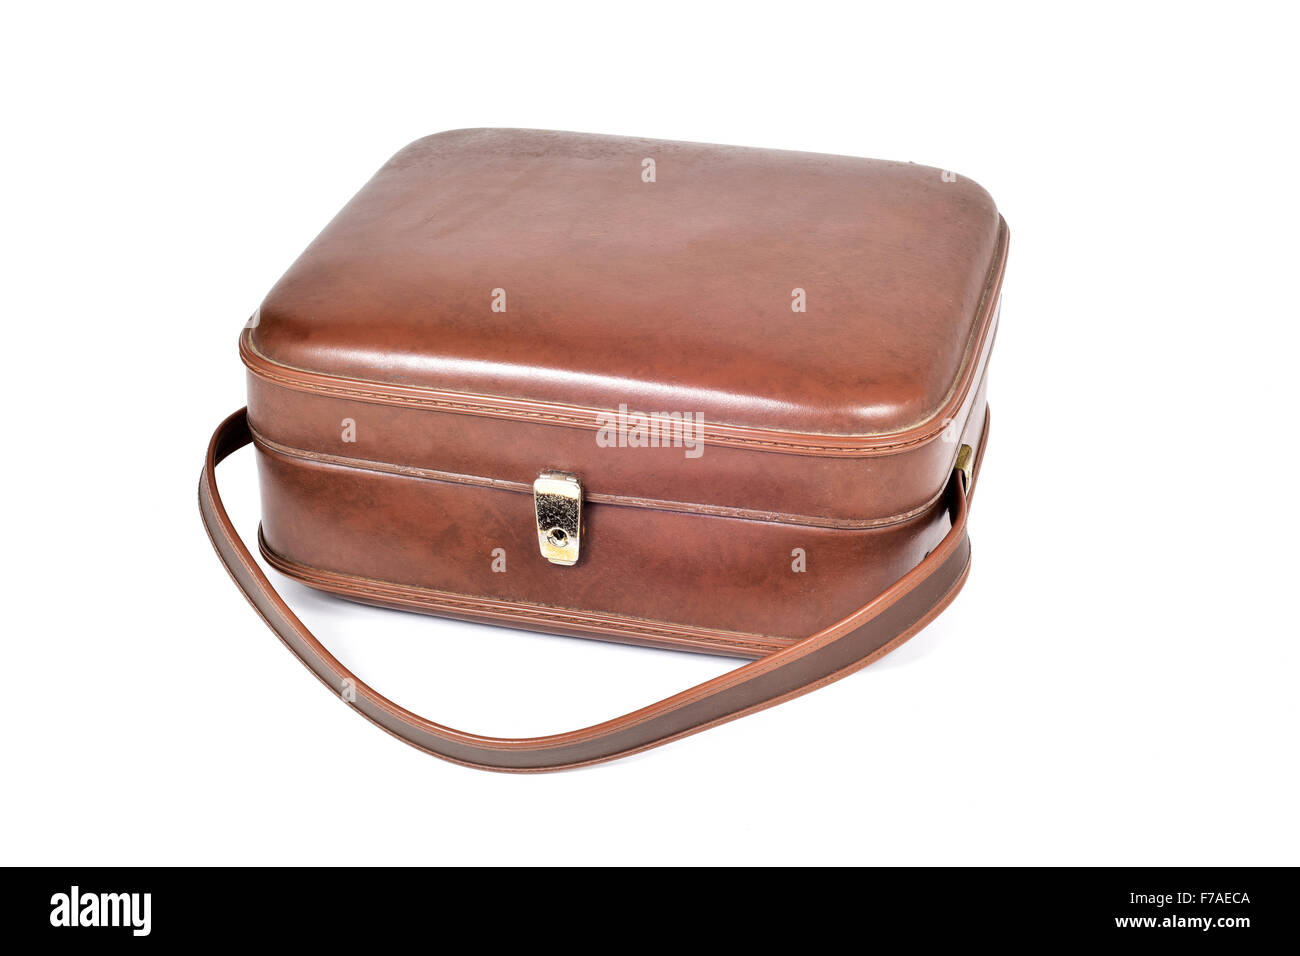 an old square brown leatherette suitcase on a white background - Stock Image